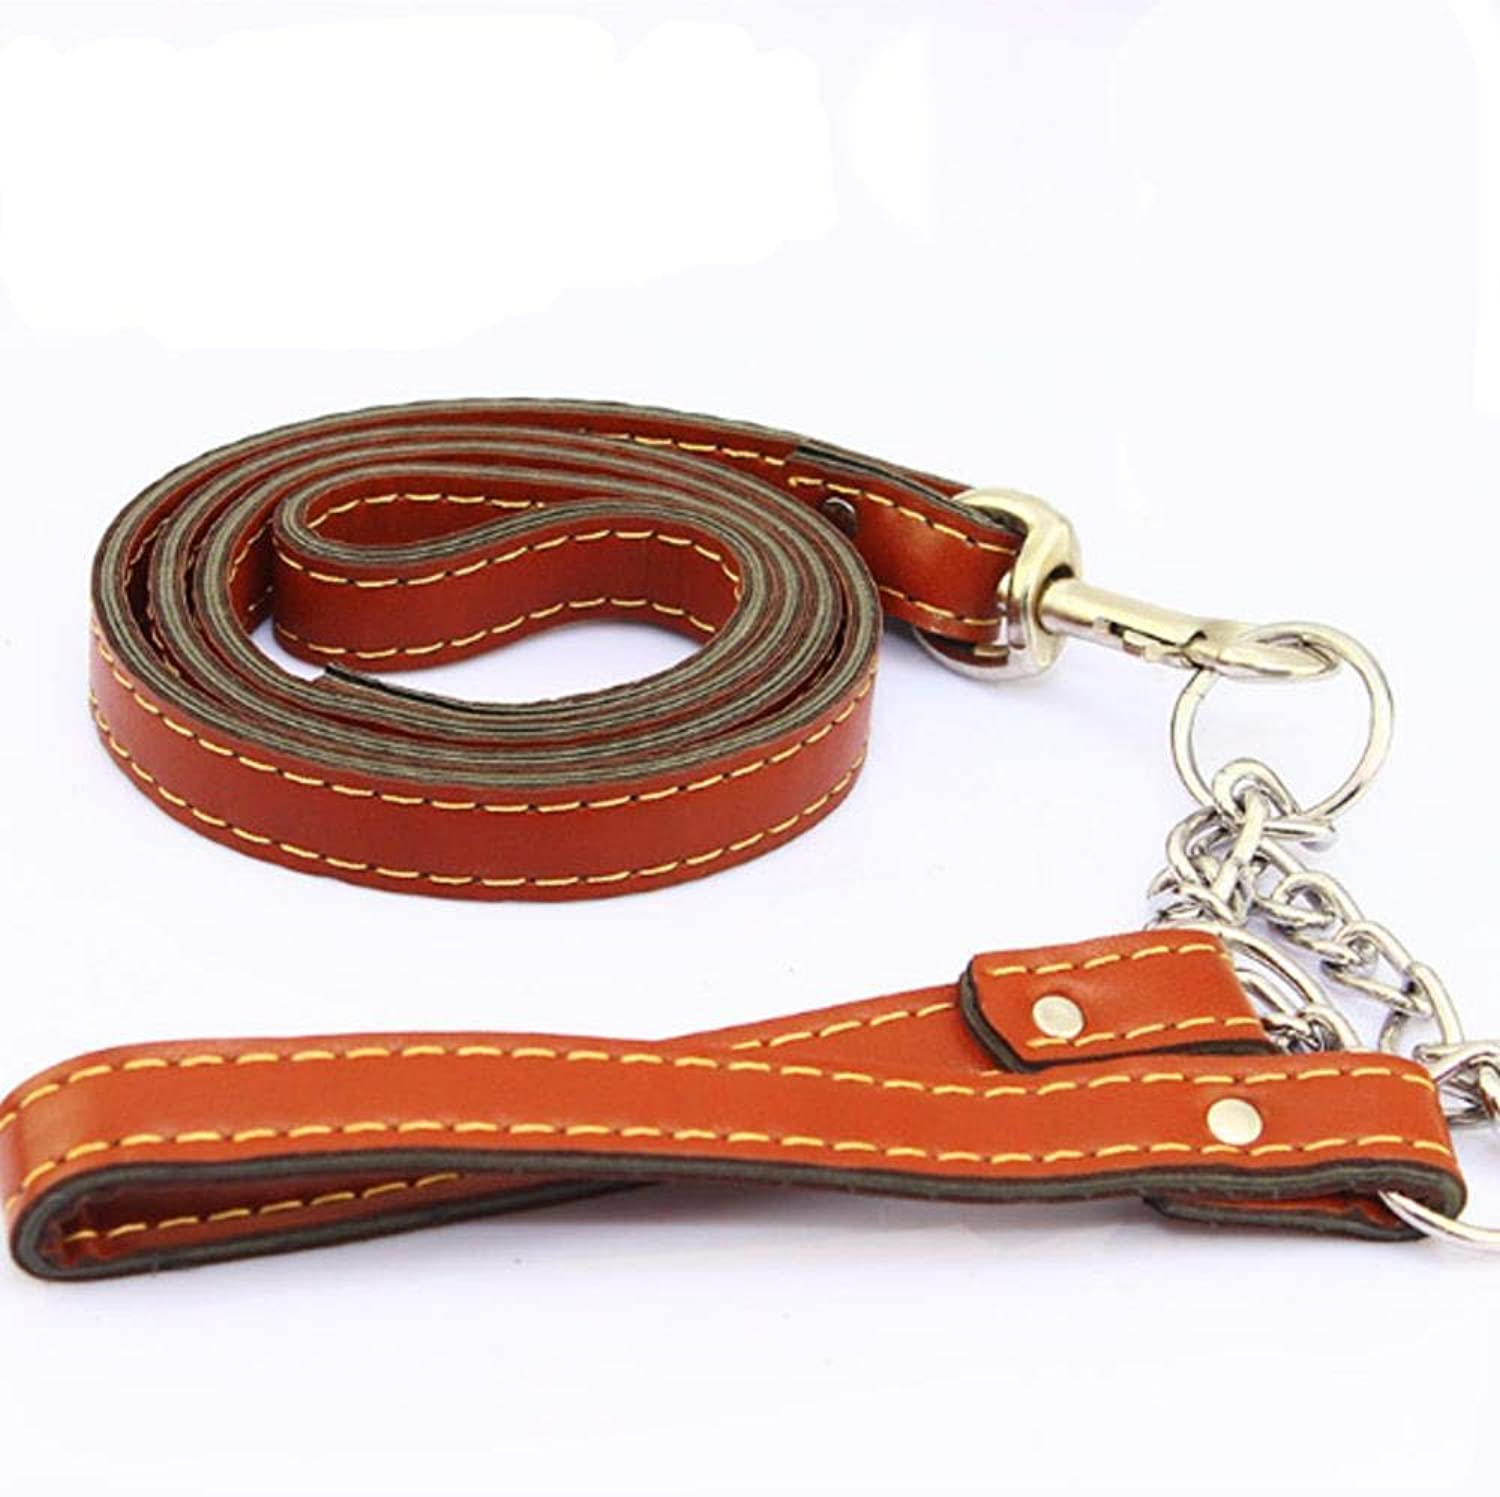 Hjyi Pet Traction Strap Strap Collar Large Dog Leather Suit